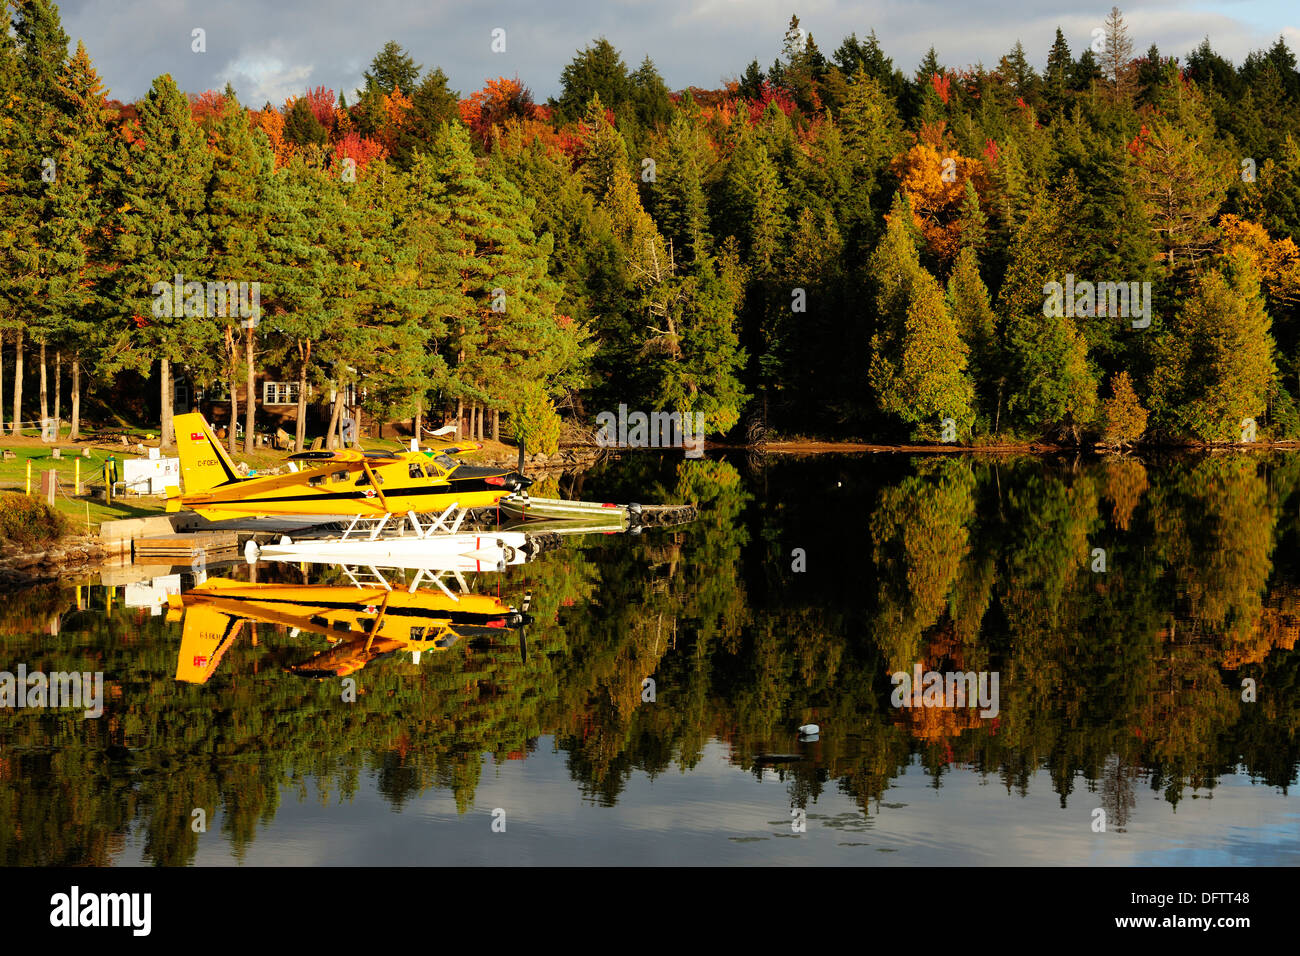 Seaplane on Smoke Lake, in front of a log house in the autumn-coloured forest, Algonquin Provincial Park, Ontario Province - Stock Image